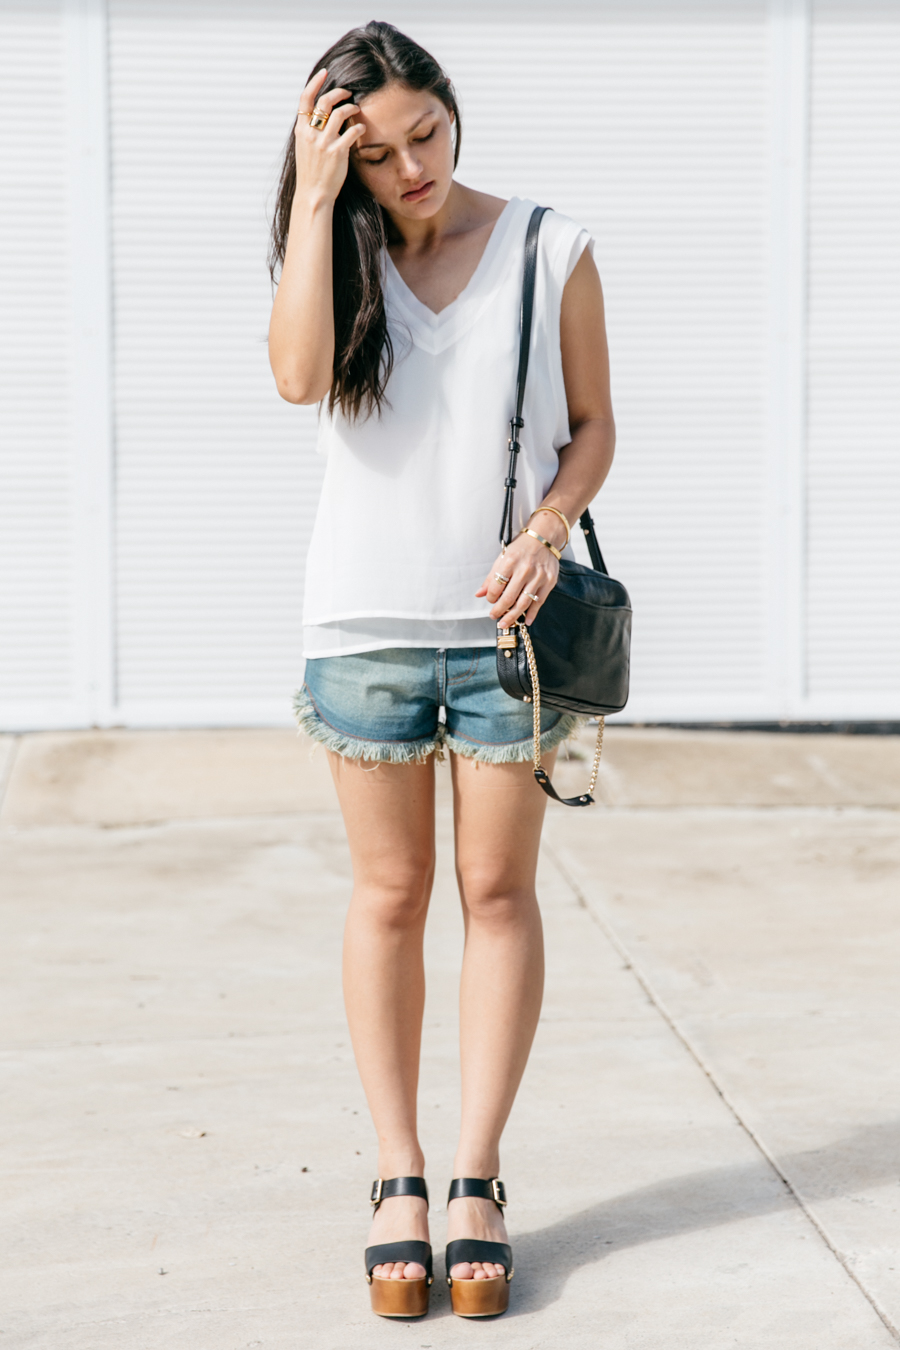 Simple denim shorts & white tank top outfit.